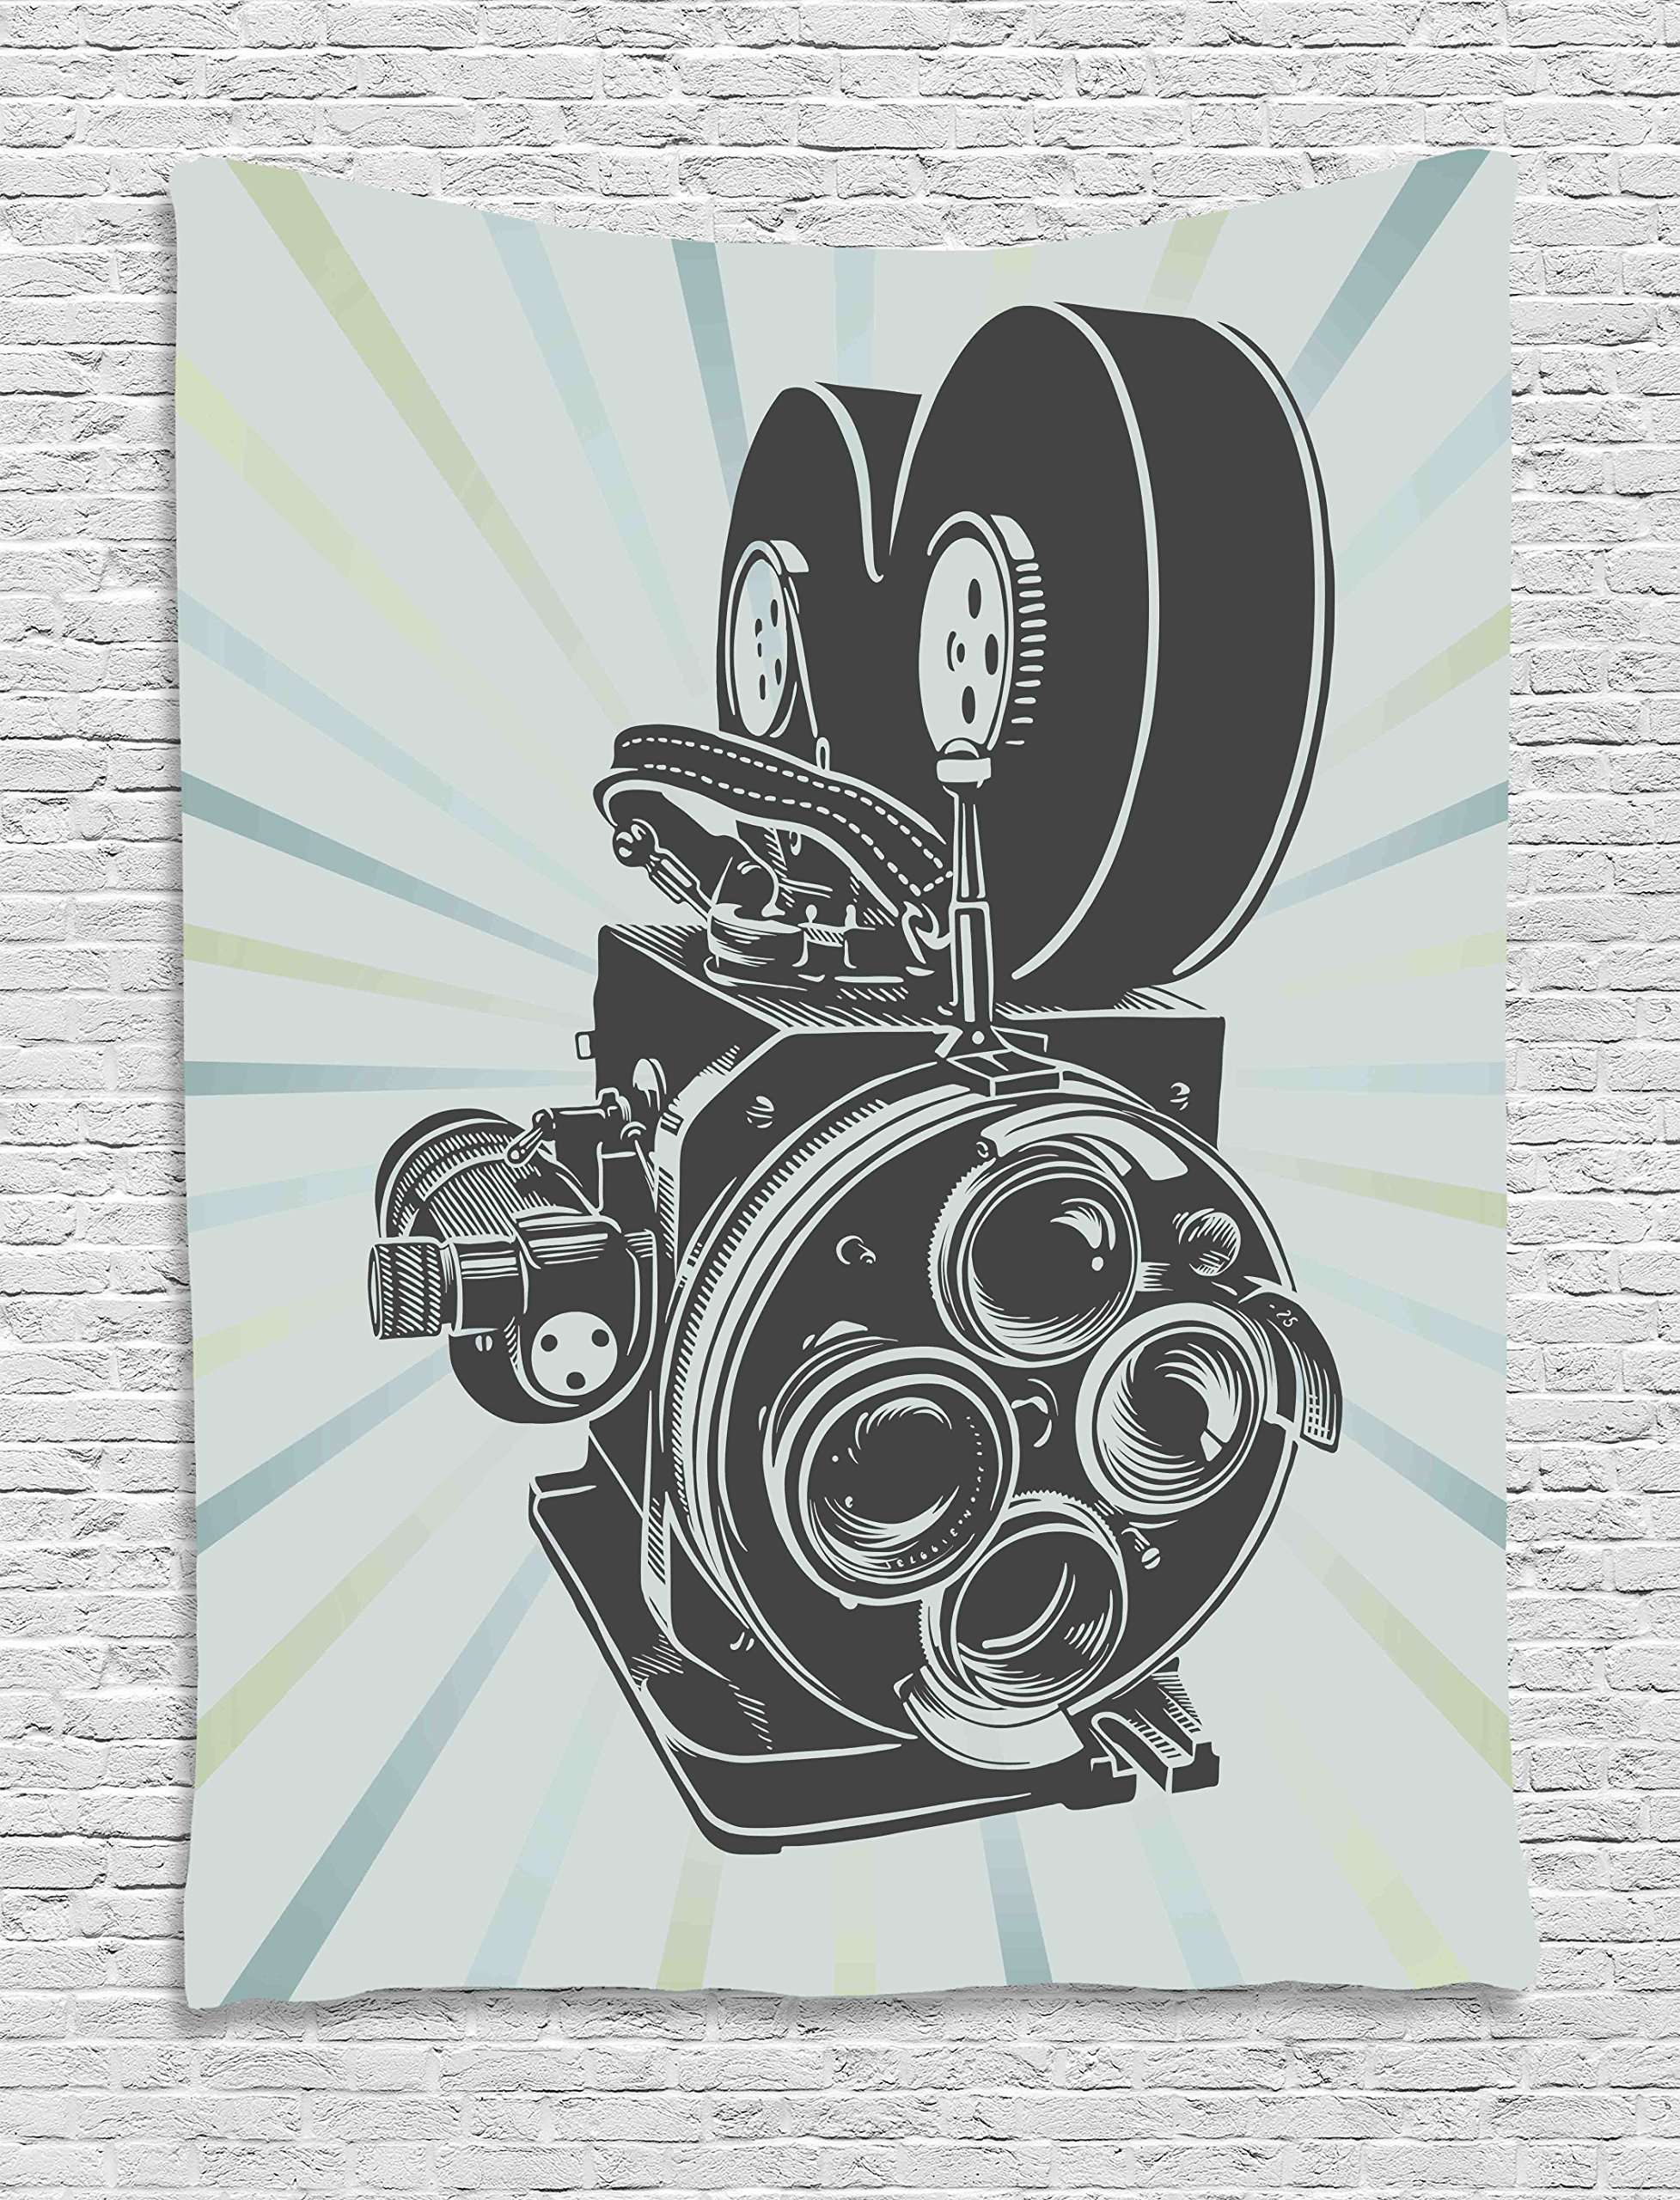 Ambesonne Modern Tapestry, Vintage Movie Camera Figure in Monochrome Color on Starburst Background, Wall Hanging for Bedroom Living Room Dorm, 40 W X 60 L inches, Grey Blue and Sky Blue